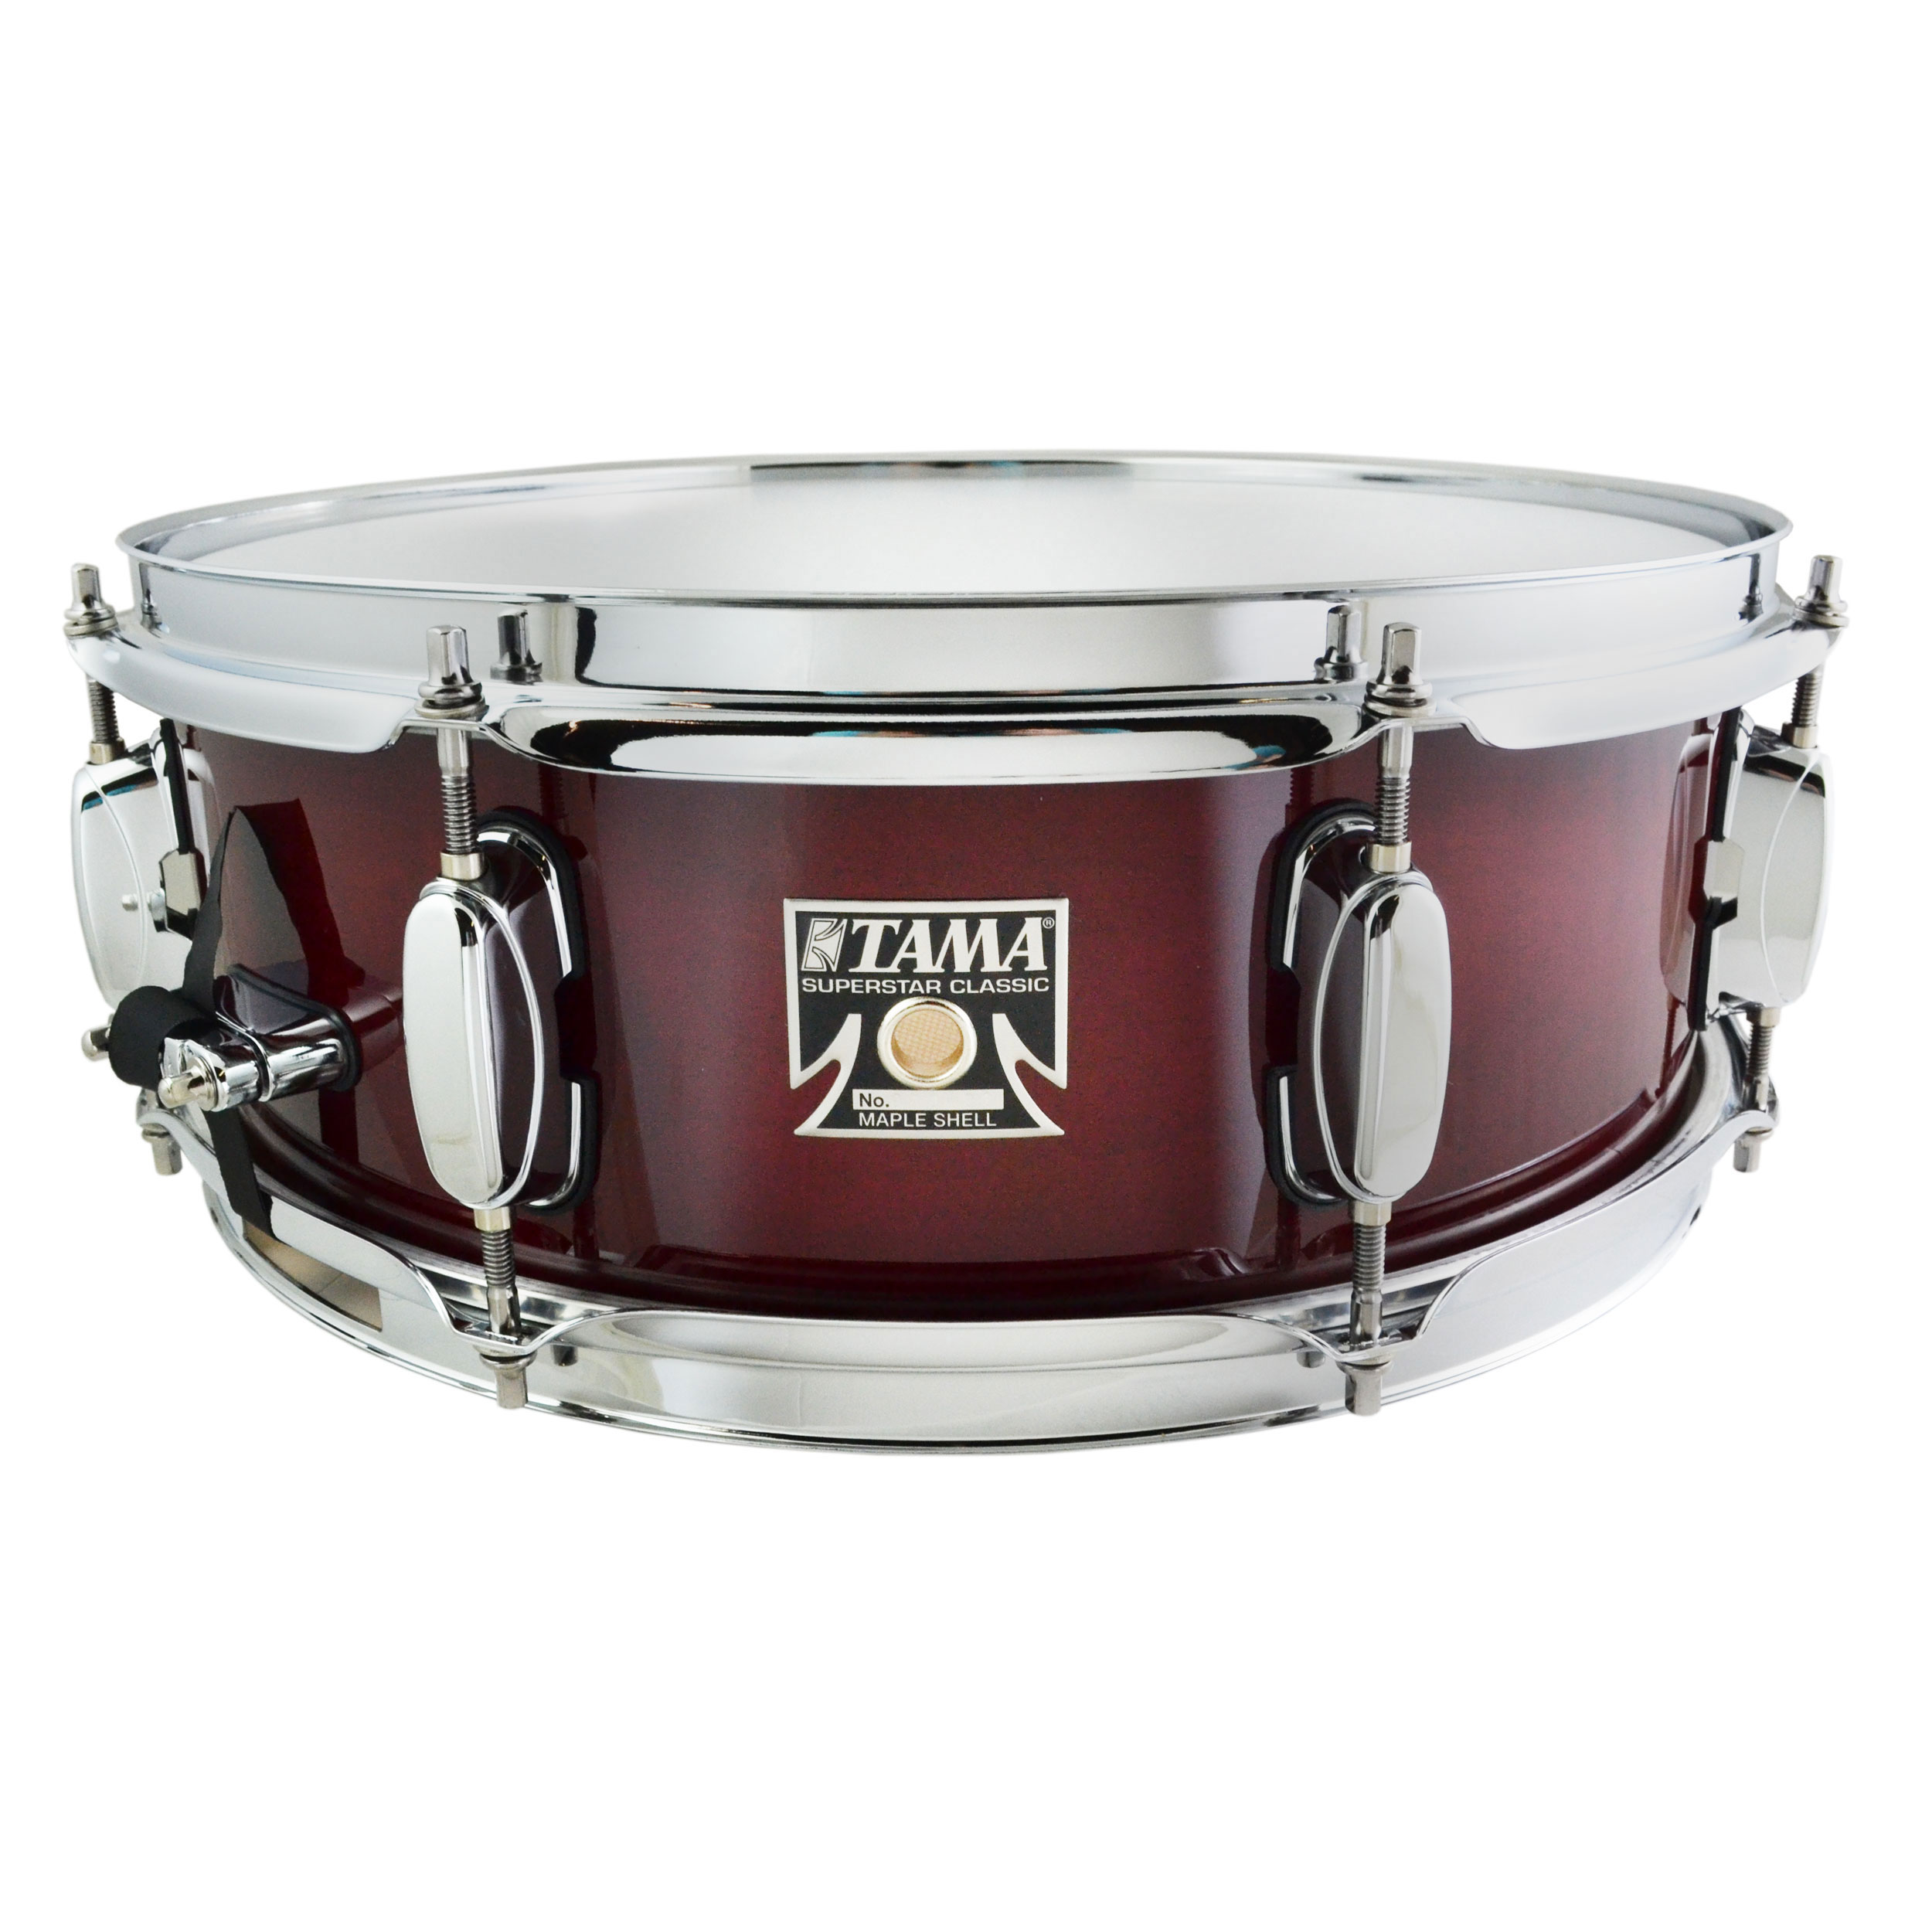 "Tama 5"" x 14"" Superstar Classic Snare Drum in Lacquer Finish"